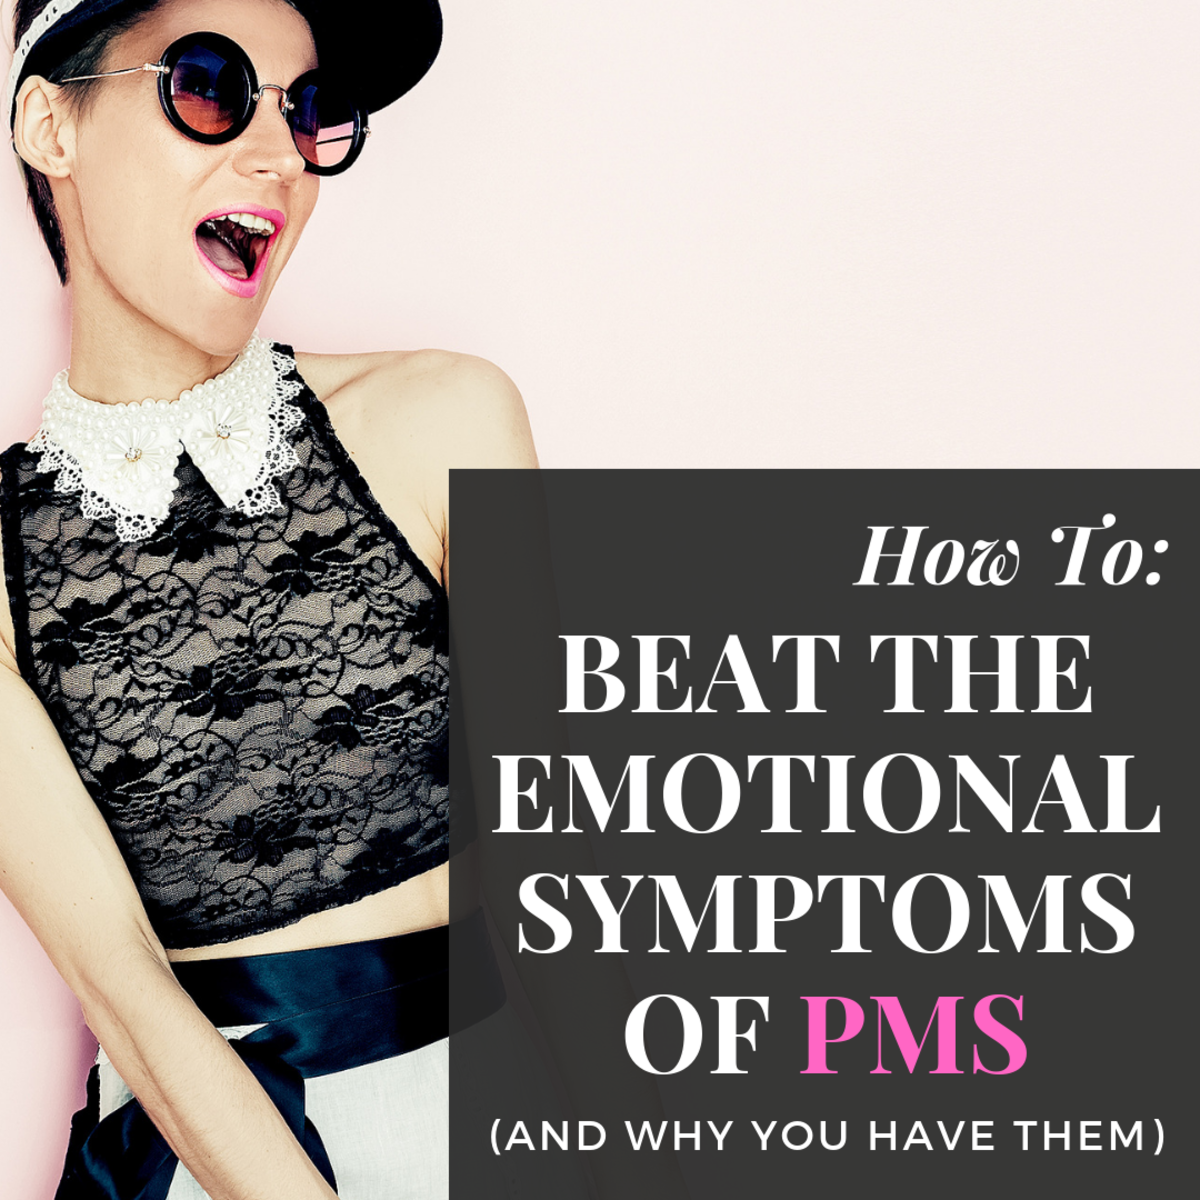 How to Beat the Emotional Symptoms of PMS (And Why You Have Them)